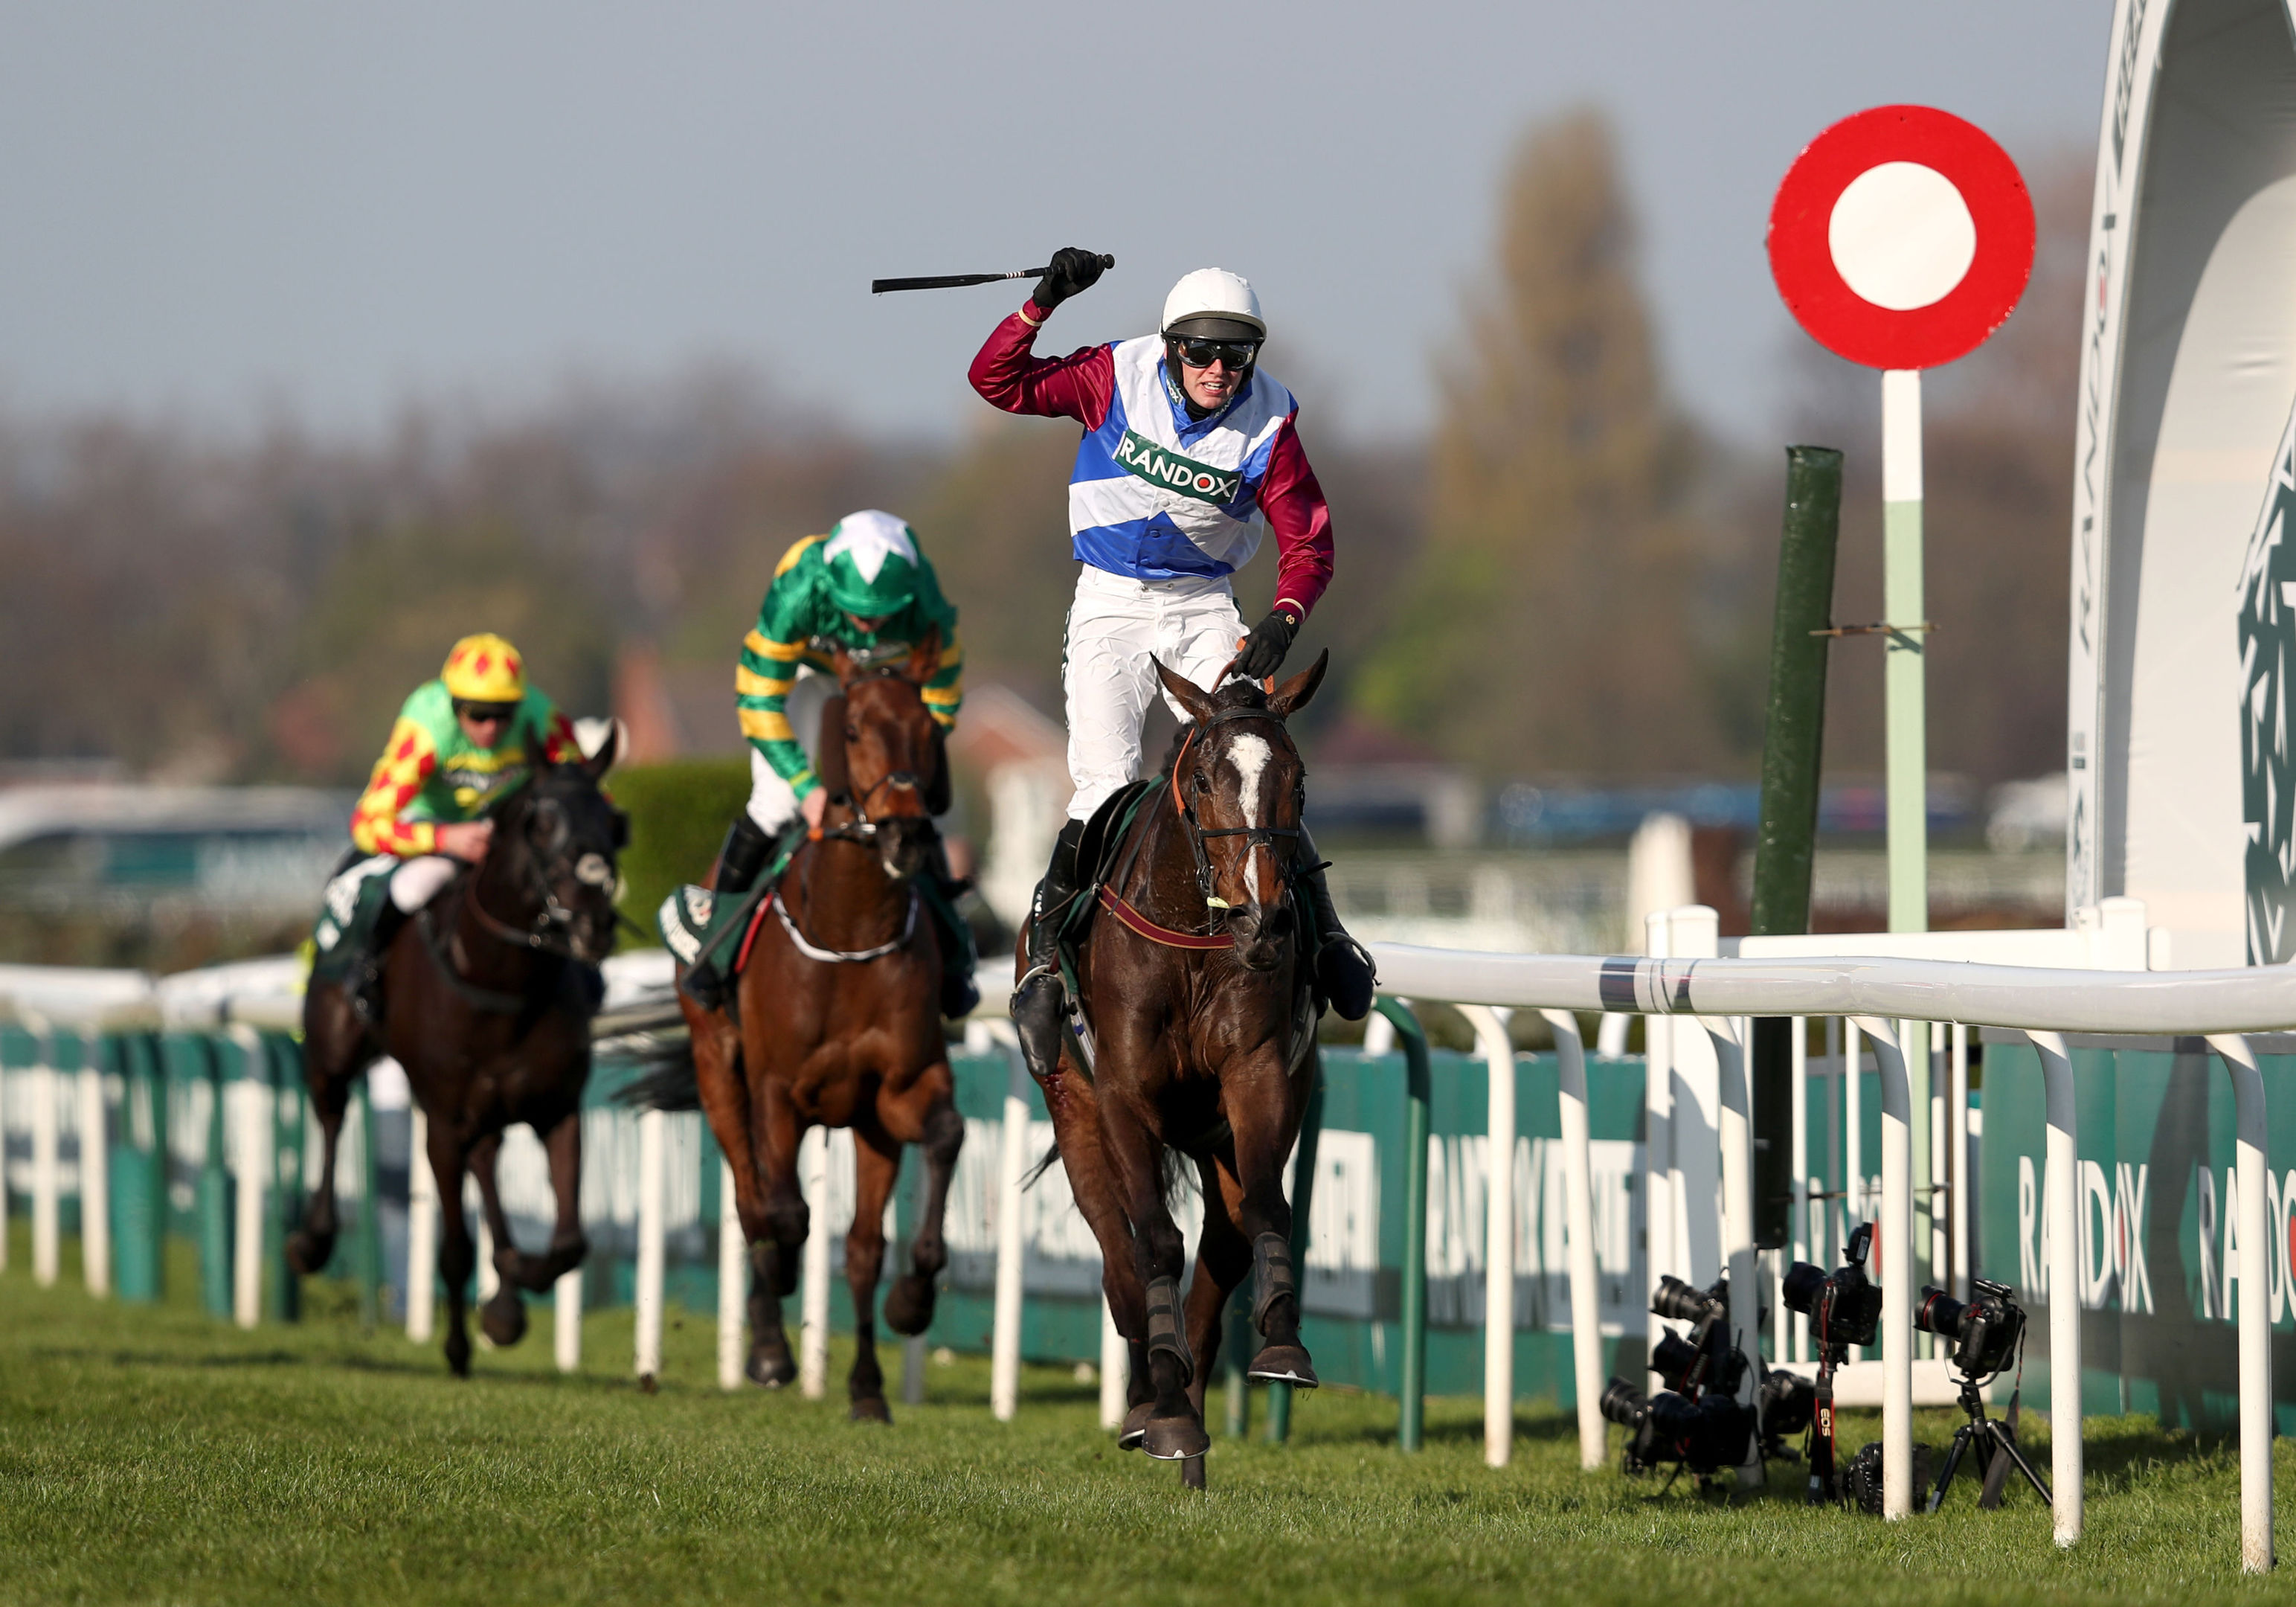 One For Arthur ridden by Derek Fox crosses the line to win the Grand National.